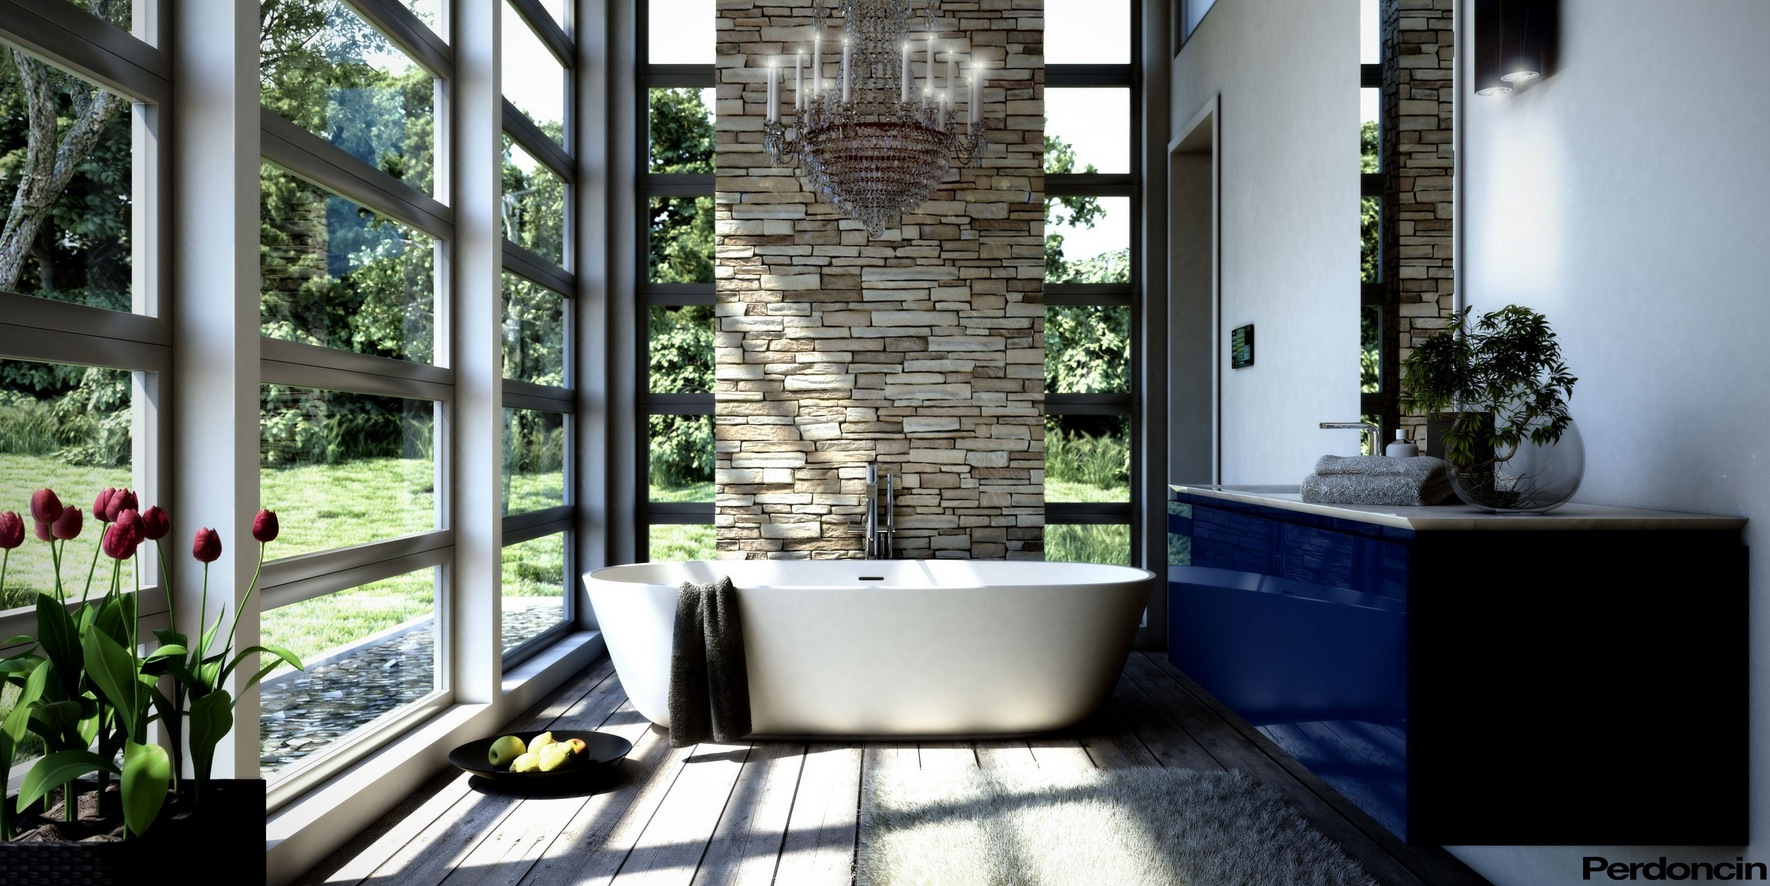 Bathtubs with a view of nature - Deco salle de bain zen nature ...